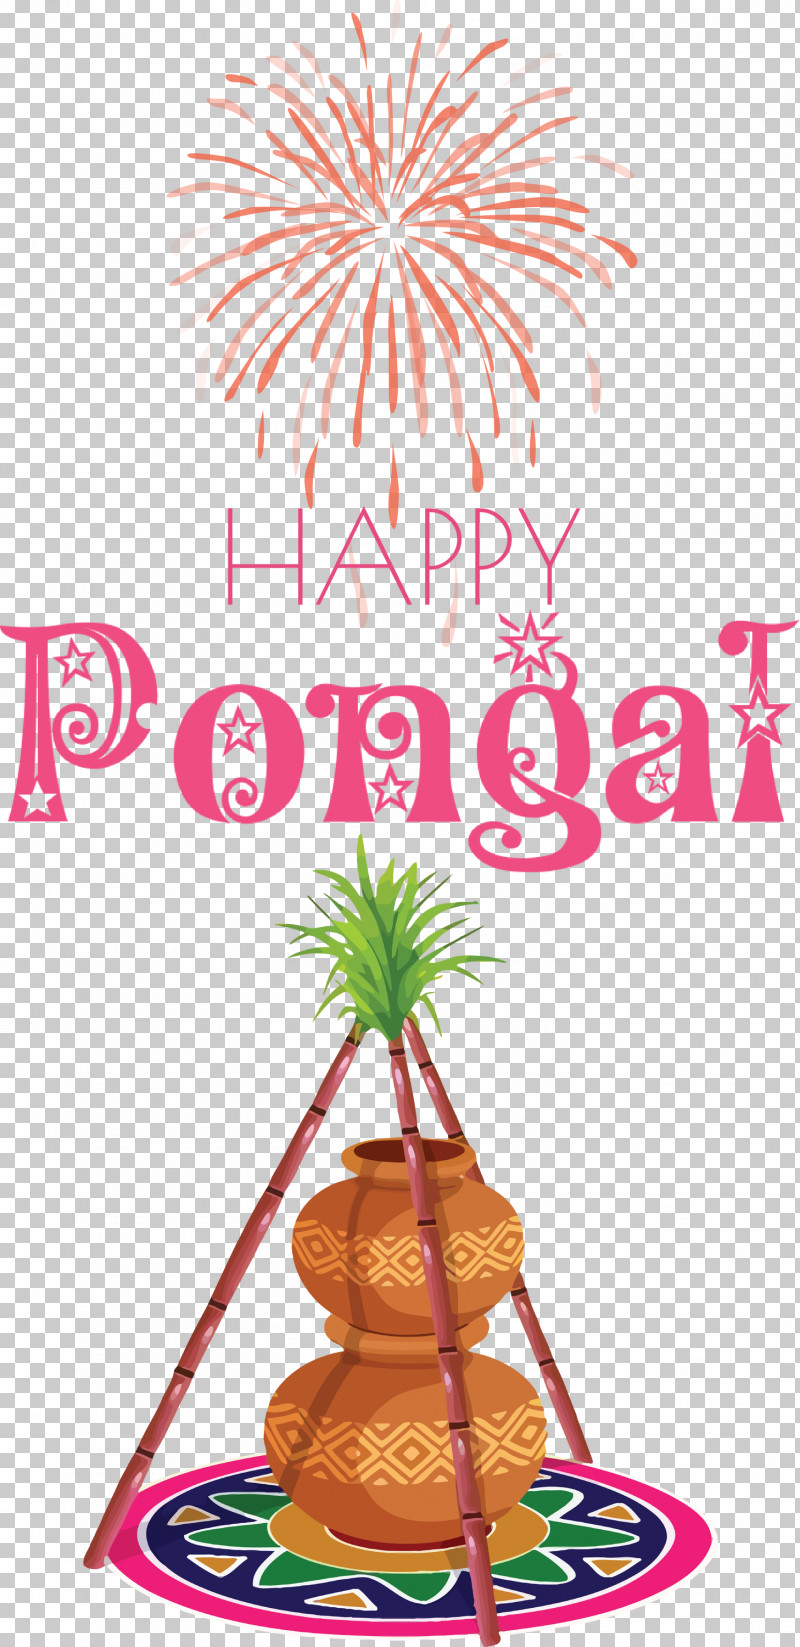 Pongal Happy Pongal PNG, Clipart, Bhogi, Festival, Happy Pongal, Harvest Festival, Indian Cuisine Free PNG Download